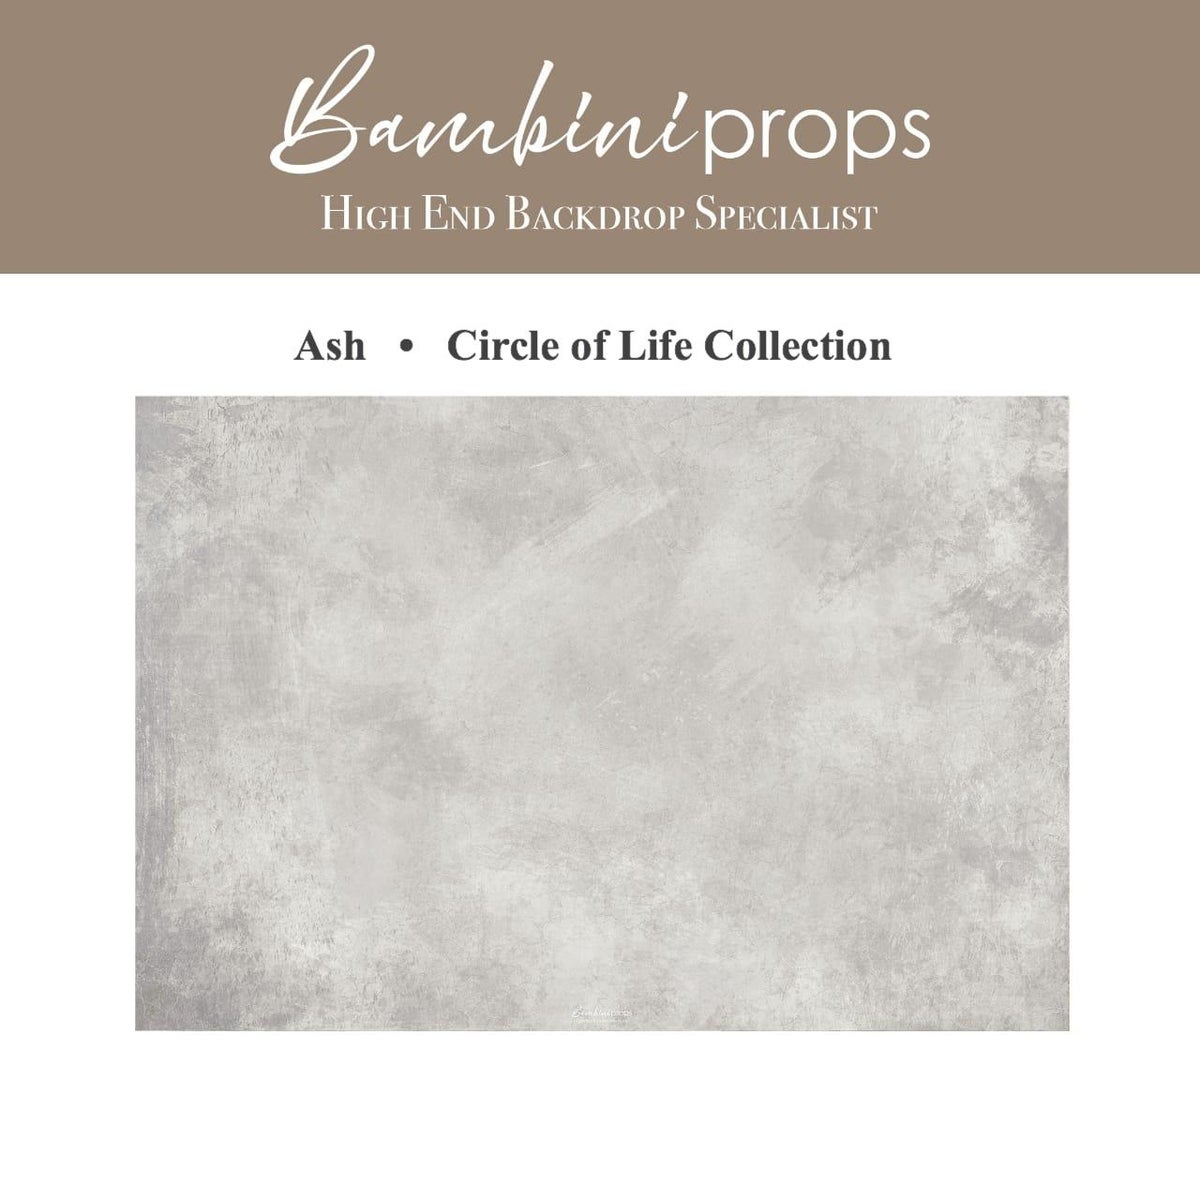 Image of Ash • Circle of Life Collection